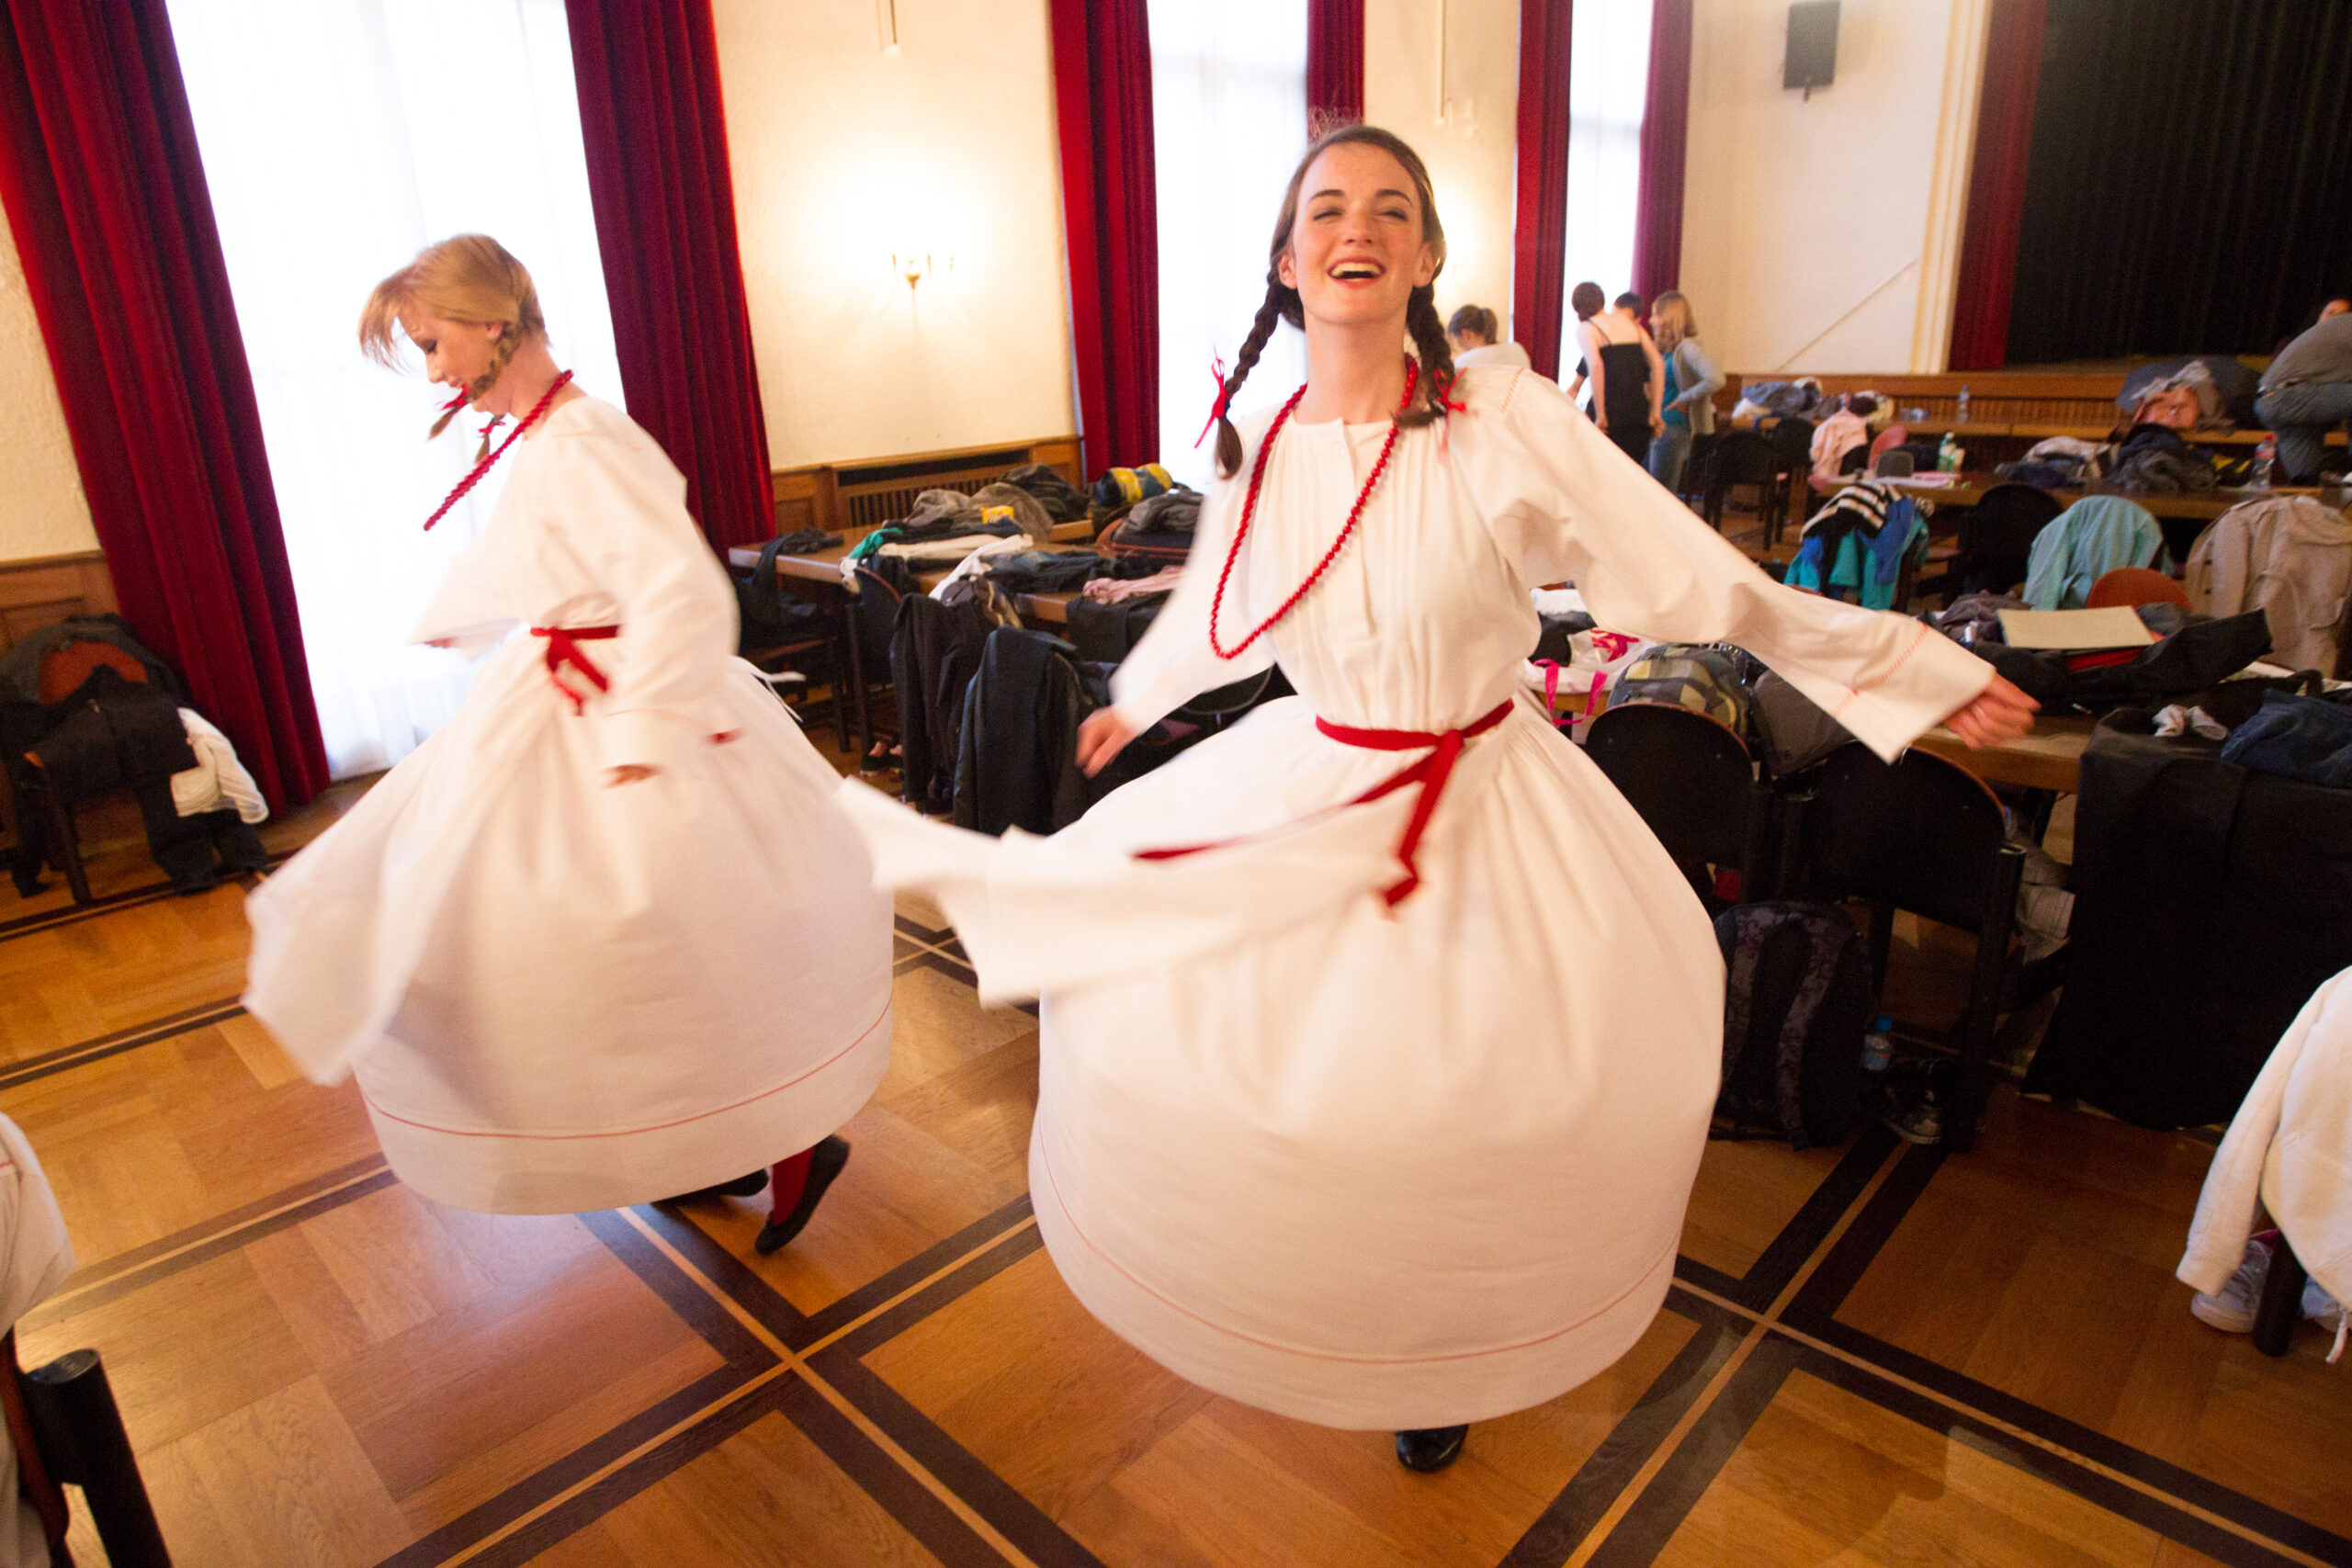 """Lenart Zore, Slovenia: The Beauties of Bela Krajina, 2012, St. Stanislav Girls' Choir of the Diocesan Classical Gymnasium, Slovenia - """"One final twirl and then we head to the stage!"""""""